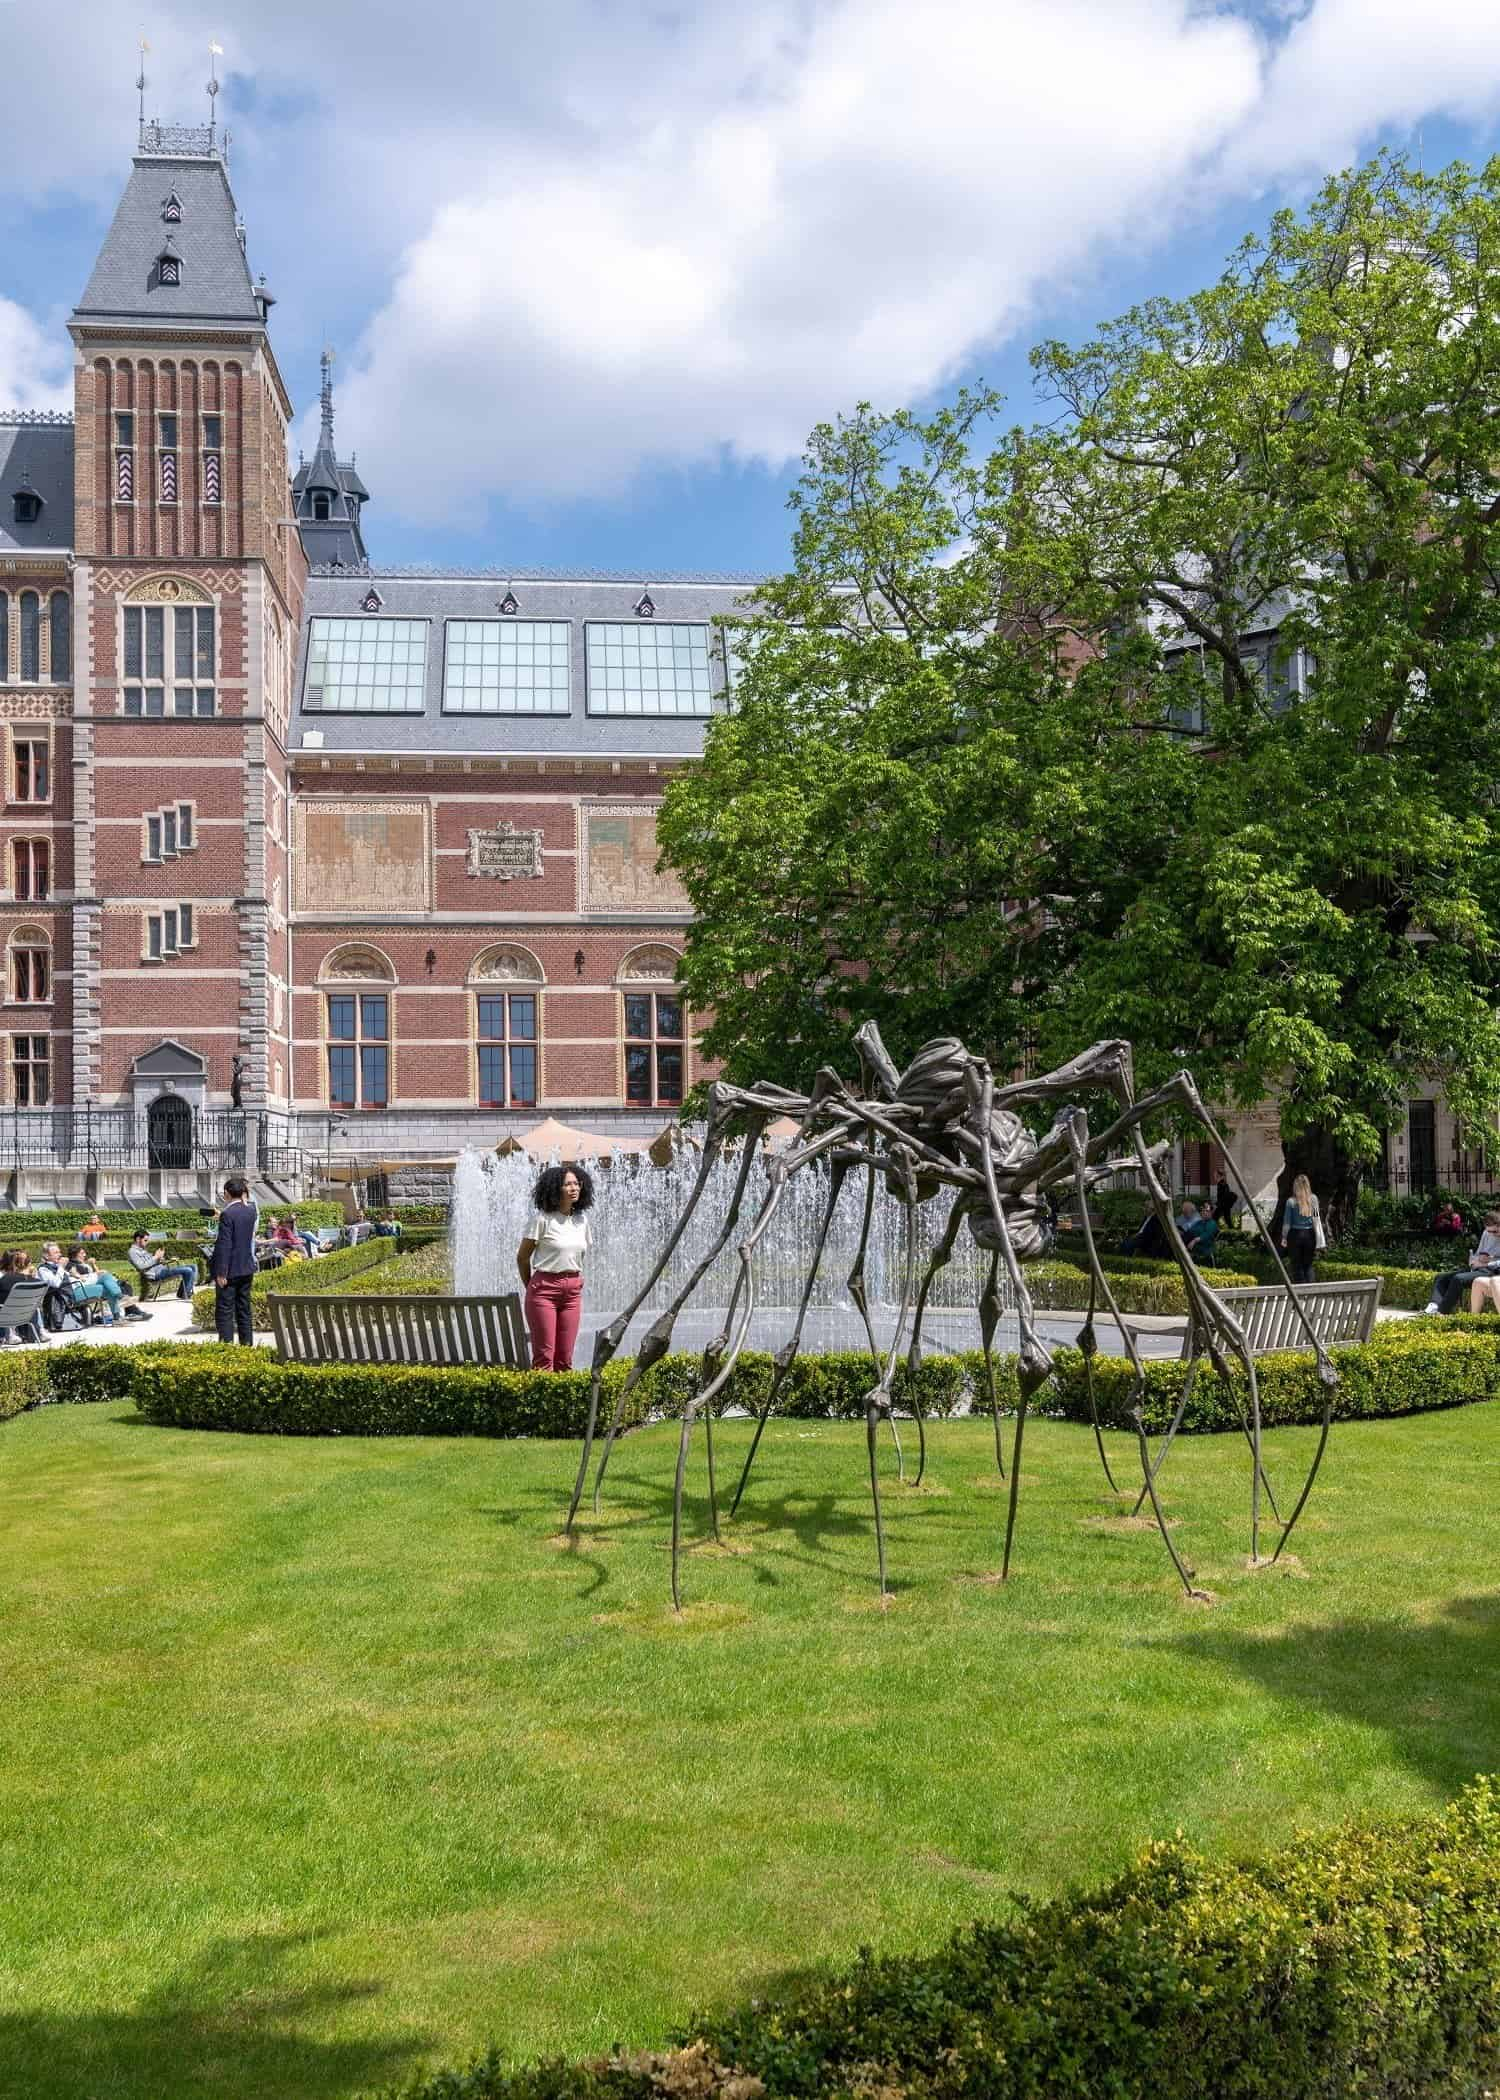 Louise Bourgeois 'Spider Couple' 2003, Easton Foundation. Foto: Antoine van Kaam © The Easton Foundation/Pictoright, Amsterdam